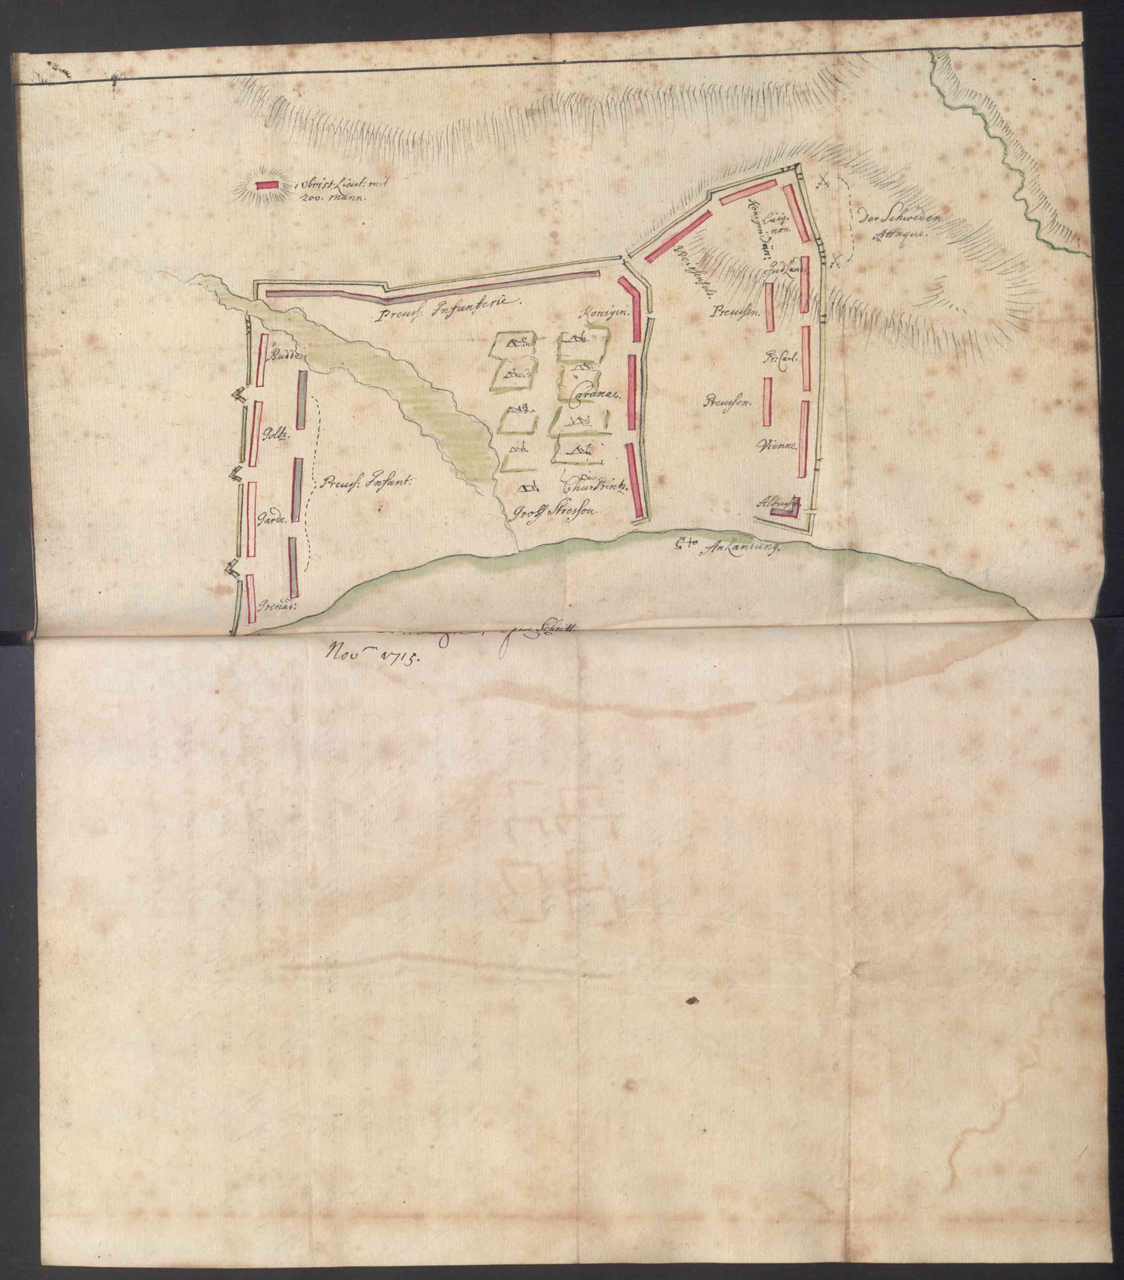 Sp088-023_0039 – SP88/23 f.39: Plan of the Isle de Rugen, November 1715